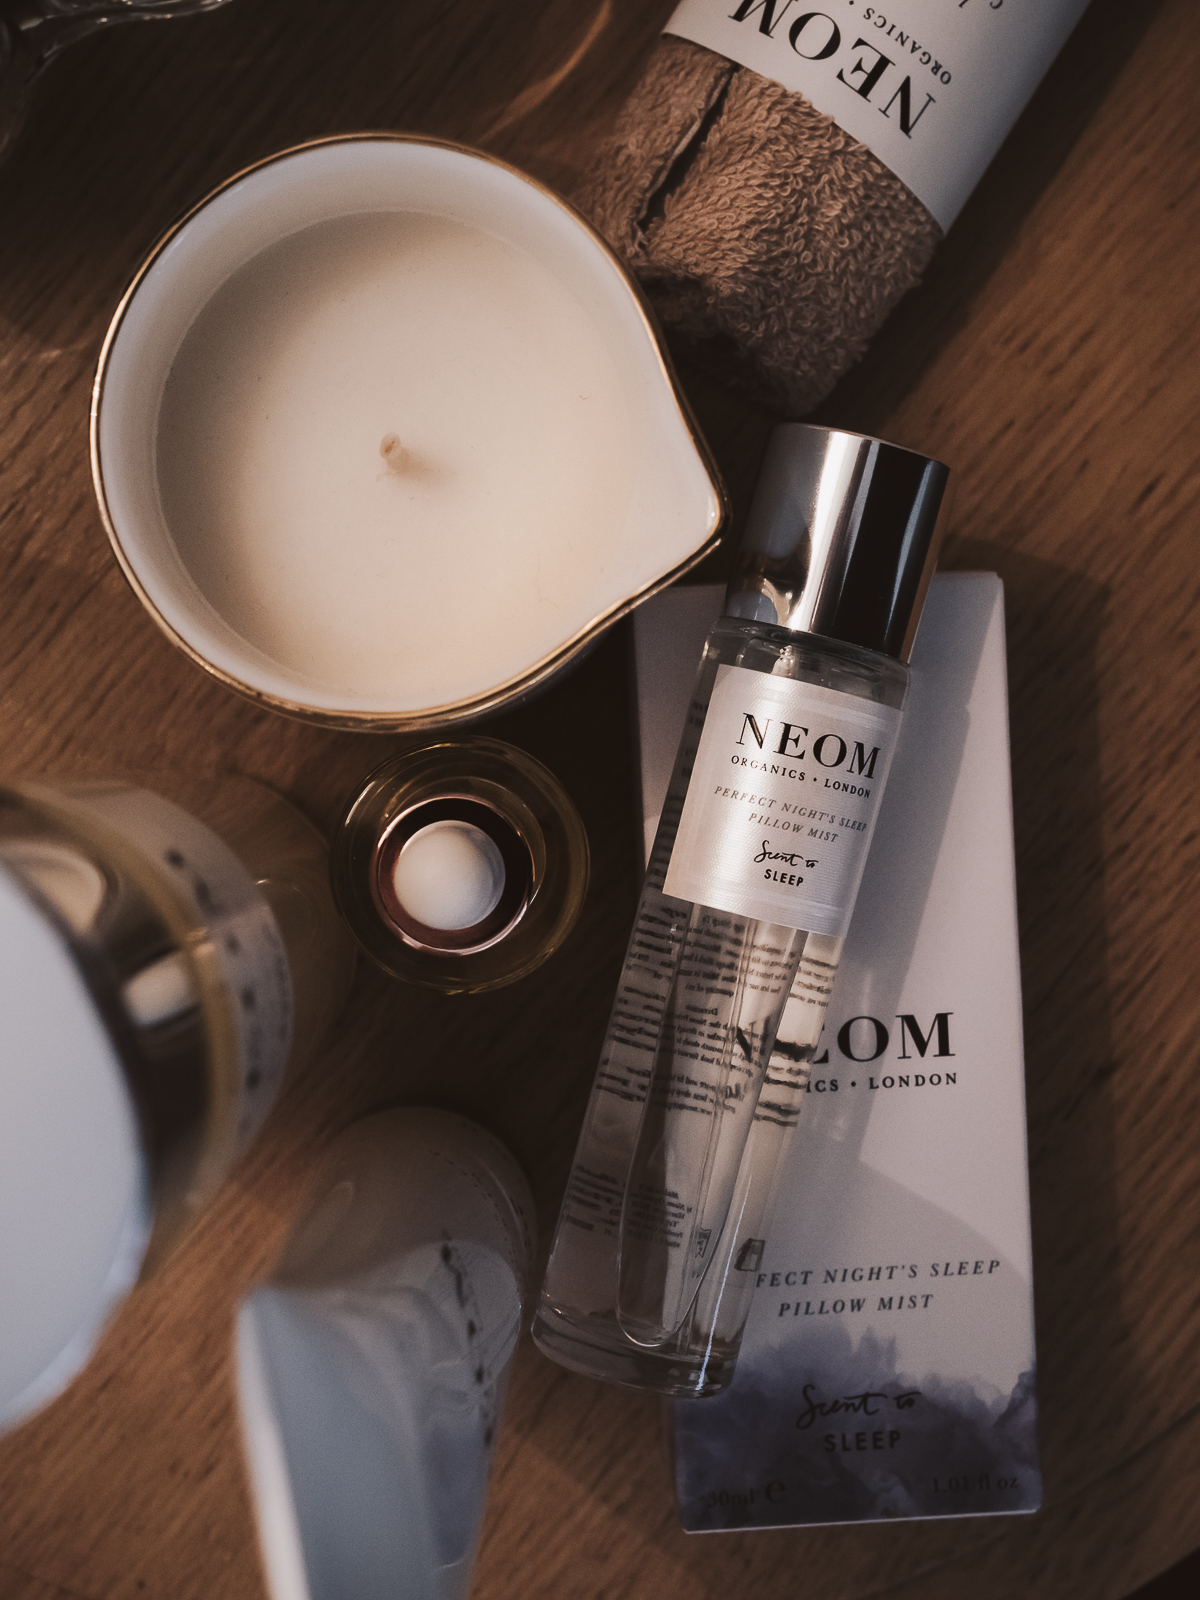 NEOM 舒緩恬睡枕頭噴霧 - Perfect Night's Sleep Pillow Mist